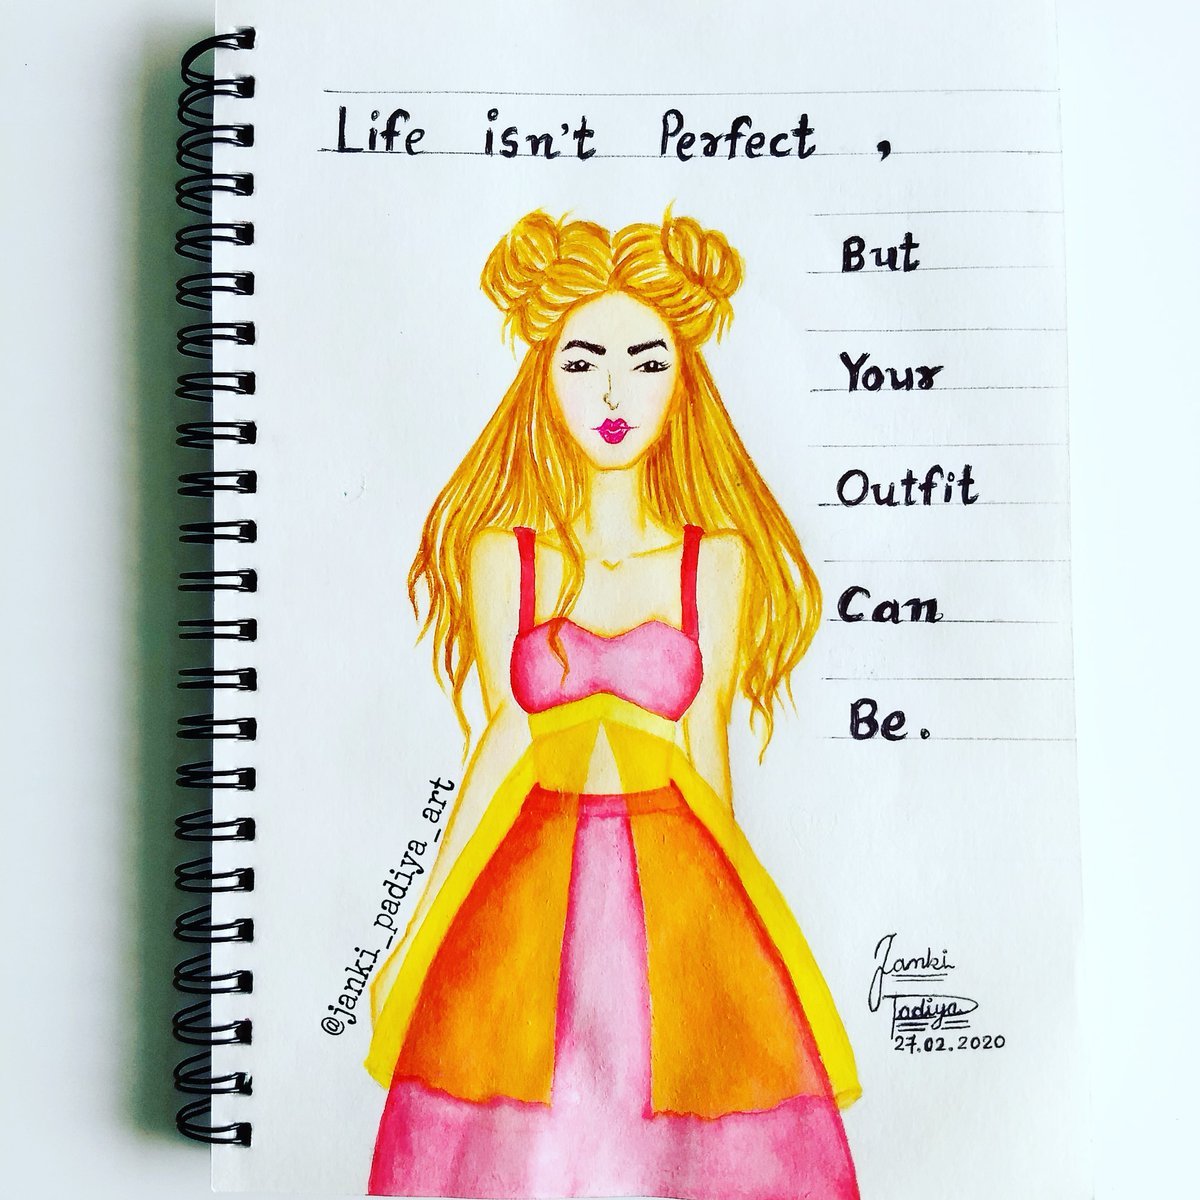 #fashiongirl #fashionillustration ❤️ . #fashion #girl #fashionblogger #styleblogger #style  #fashionphotography  #illustration #hairstyle #art #artoftheday #artphotography #quote #quoteoftheday #handlettering #lettering #artistsoninstagram #follow . #jankipadiyaart